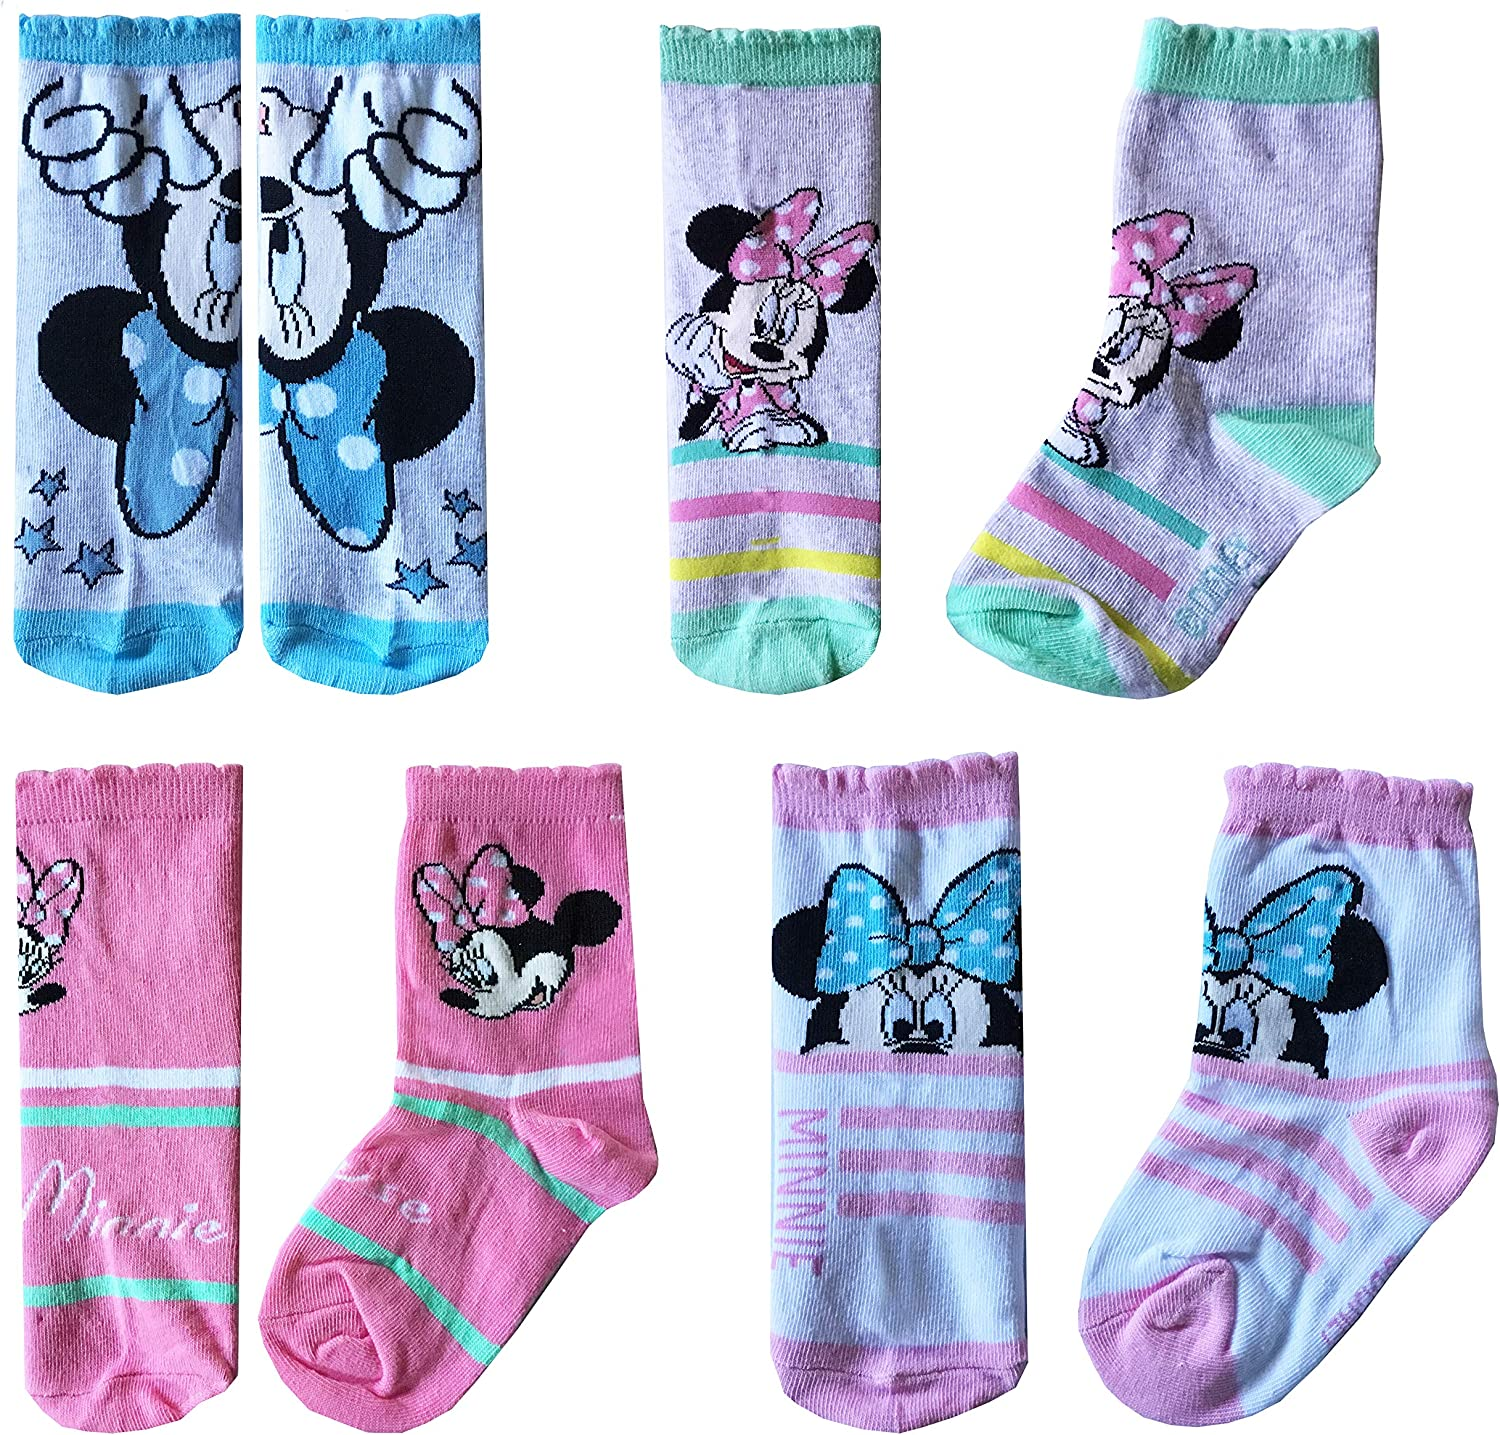 Disney Mickey Mouse Character Boys Ankle//Standard Crew Length Socks Cotton Rich Set 3-Pack 6 Child 2 UK Size